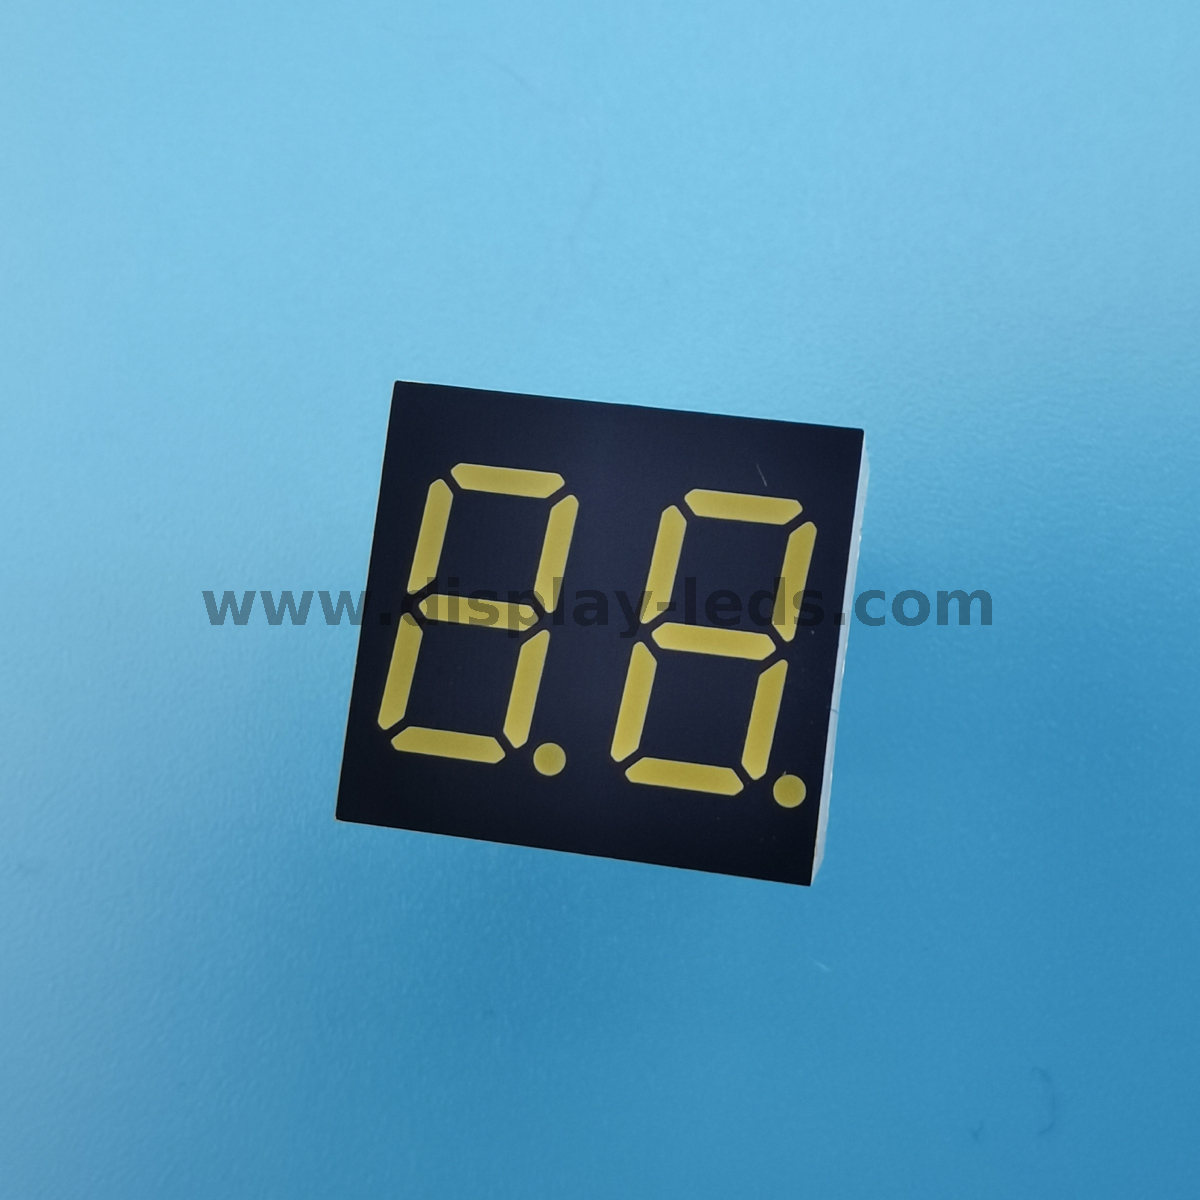 LD3622A/B Series - 0.36 inch 2 digit 7 segment display with 15mm length